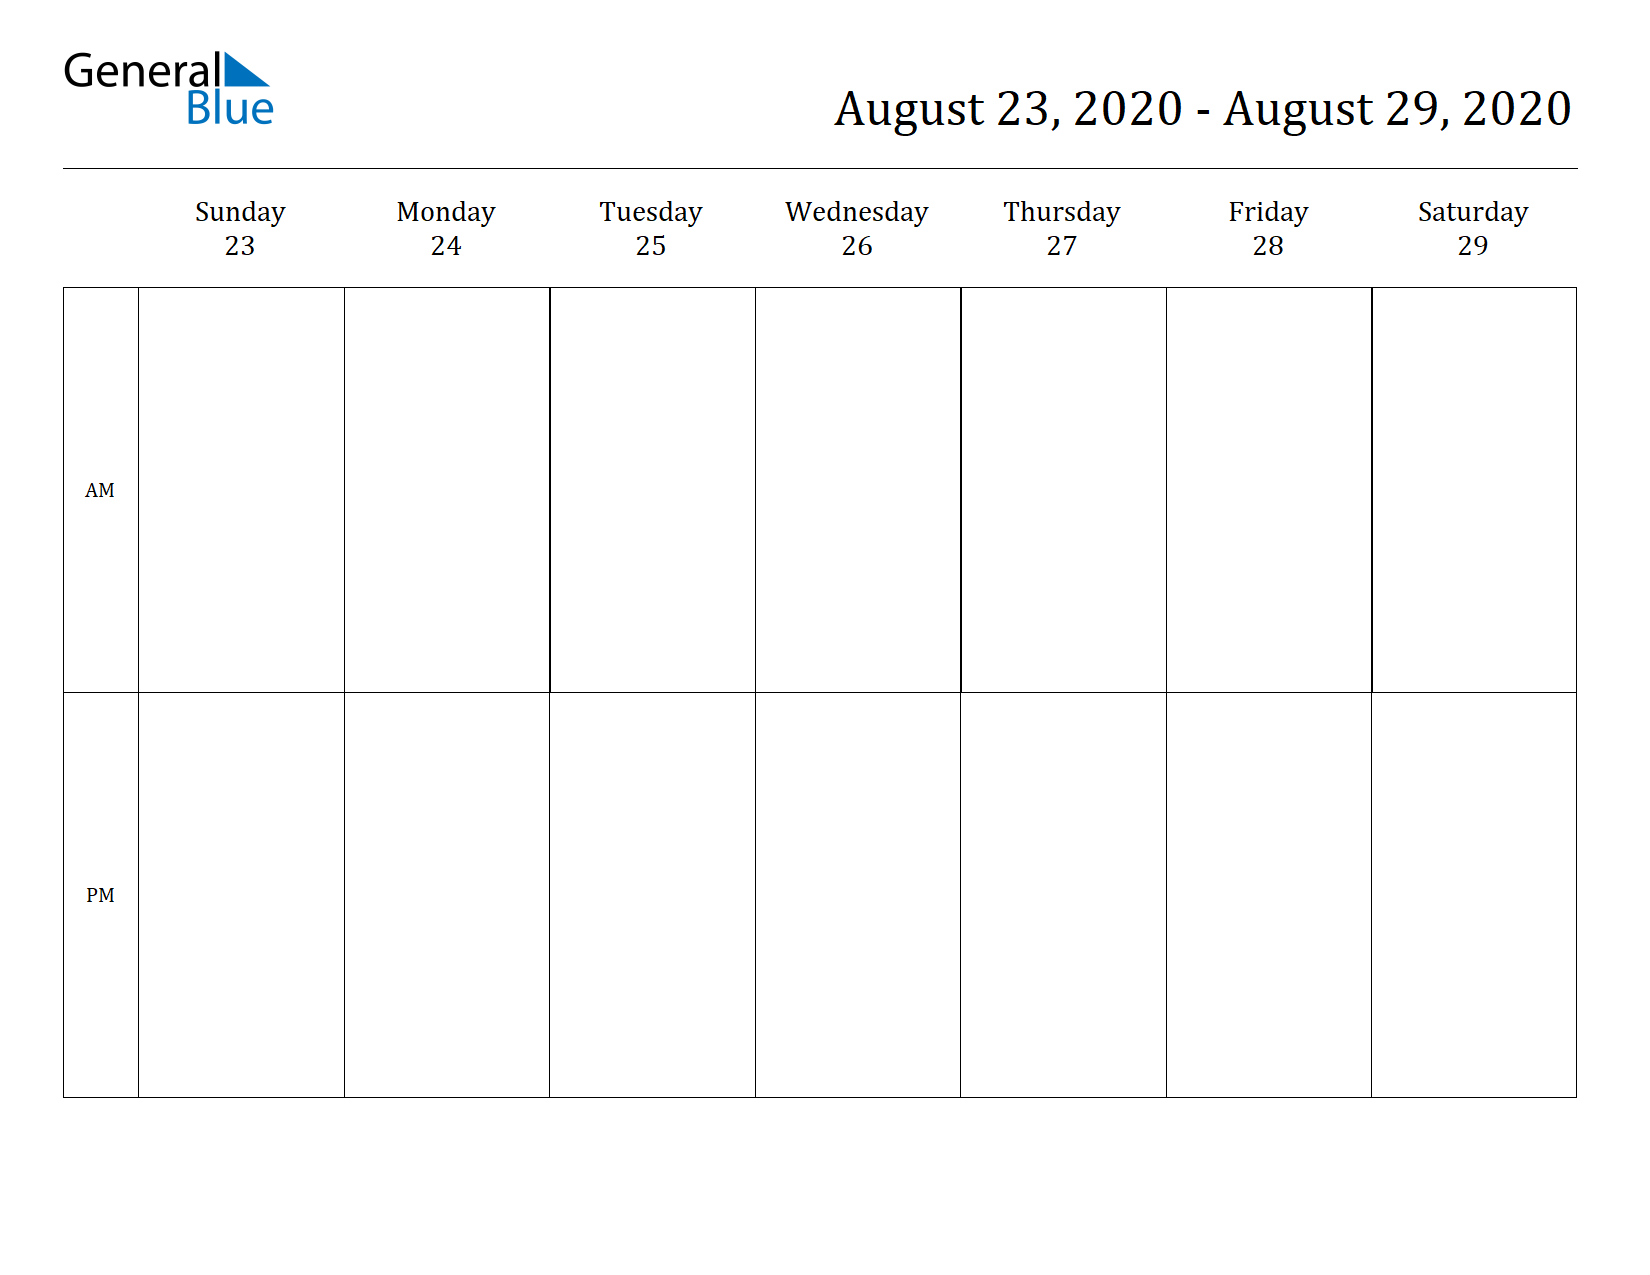 Weekly Calendar for Aug 23, 2020 to Aug 29, 2020